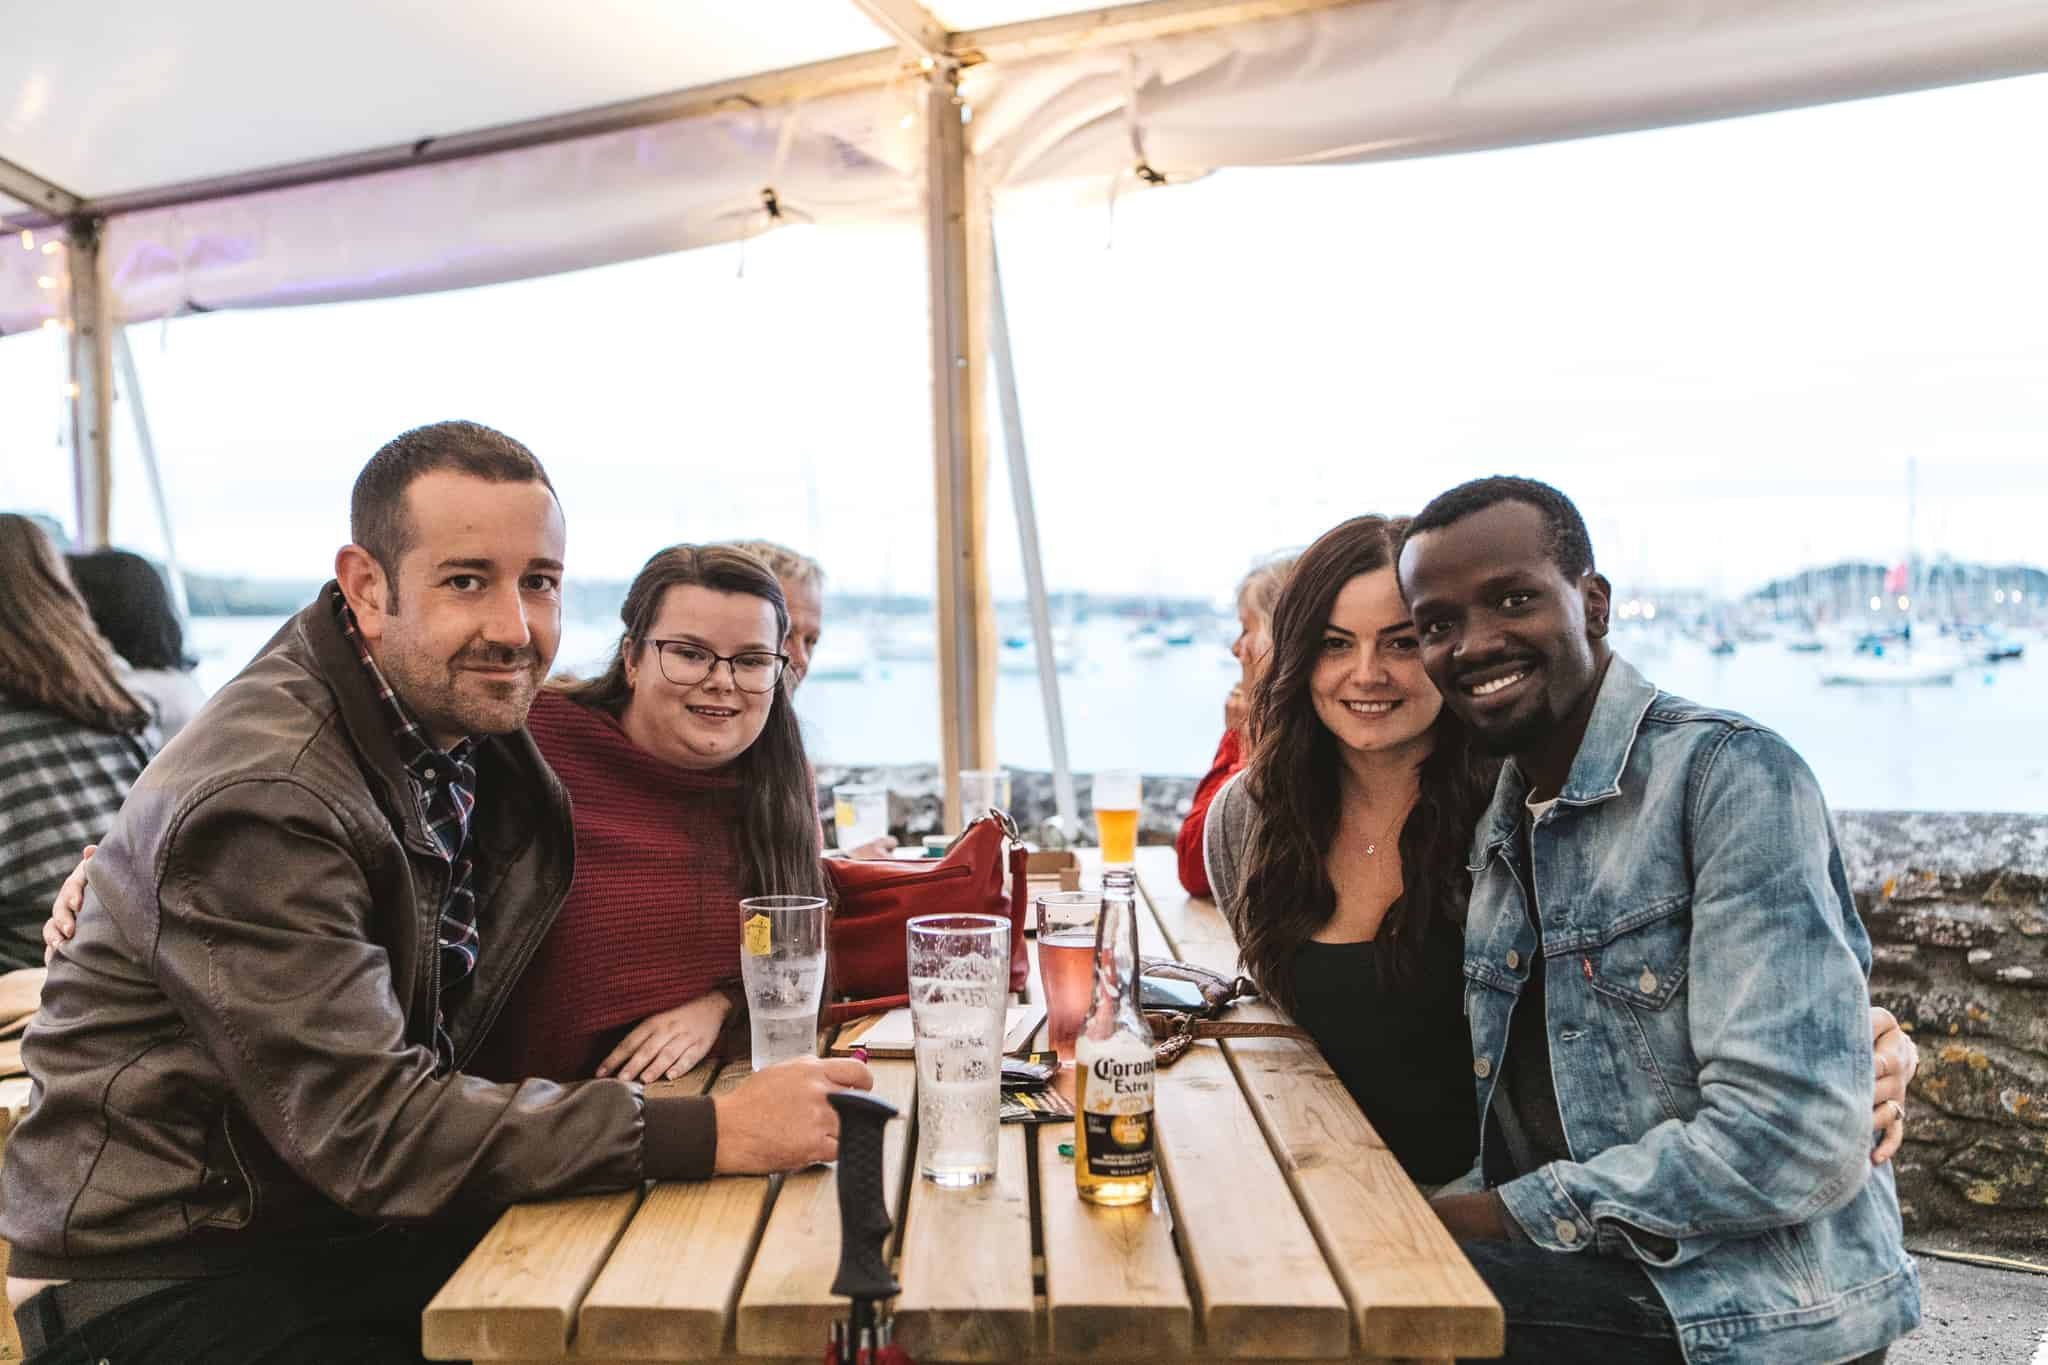 falmouth-week-at-the-working-boat-pub-live-music-events-falmouth-cornwall (27 of 114)